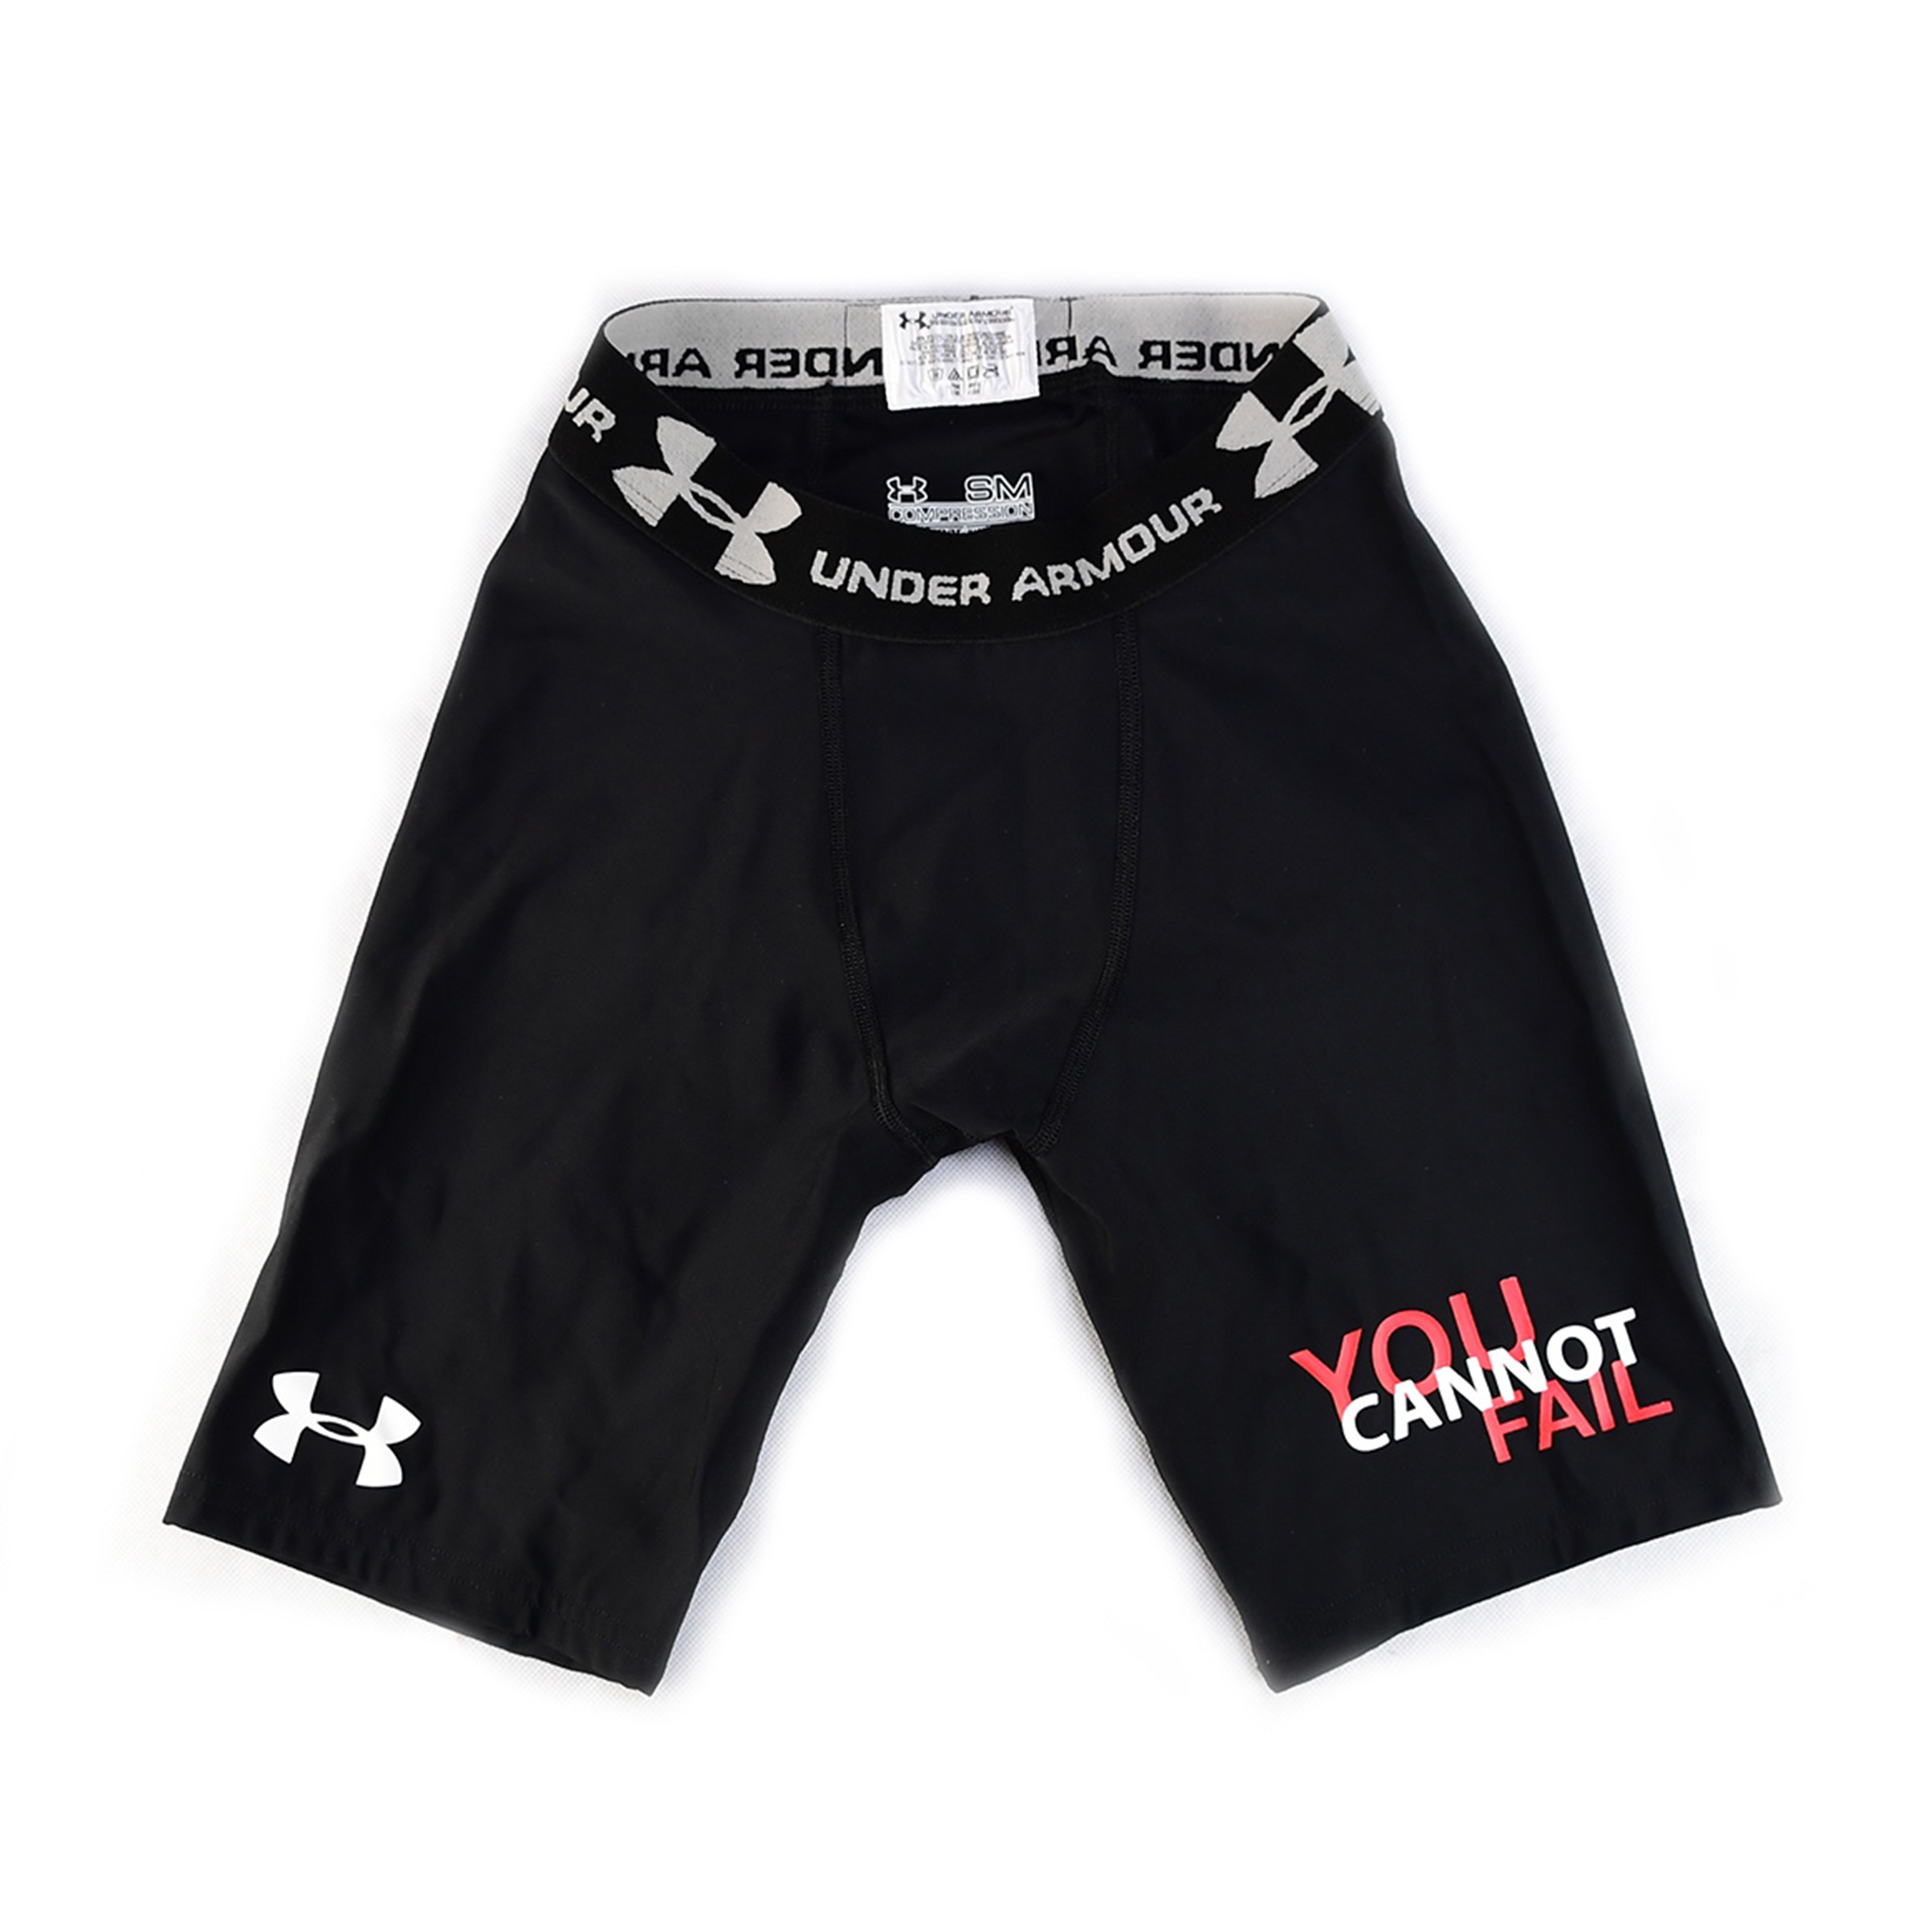 You Cannot Fail Compression Shorts